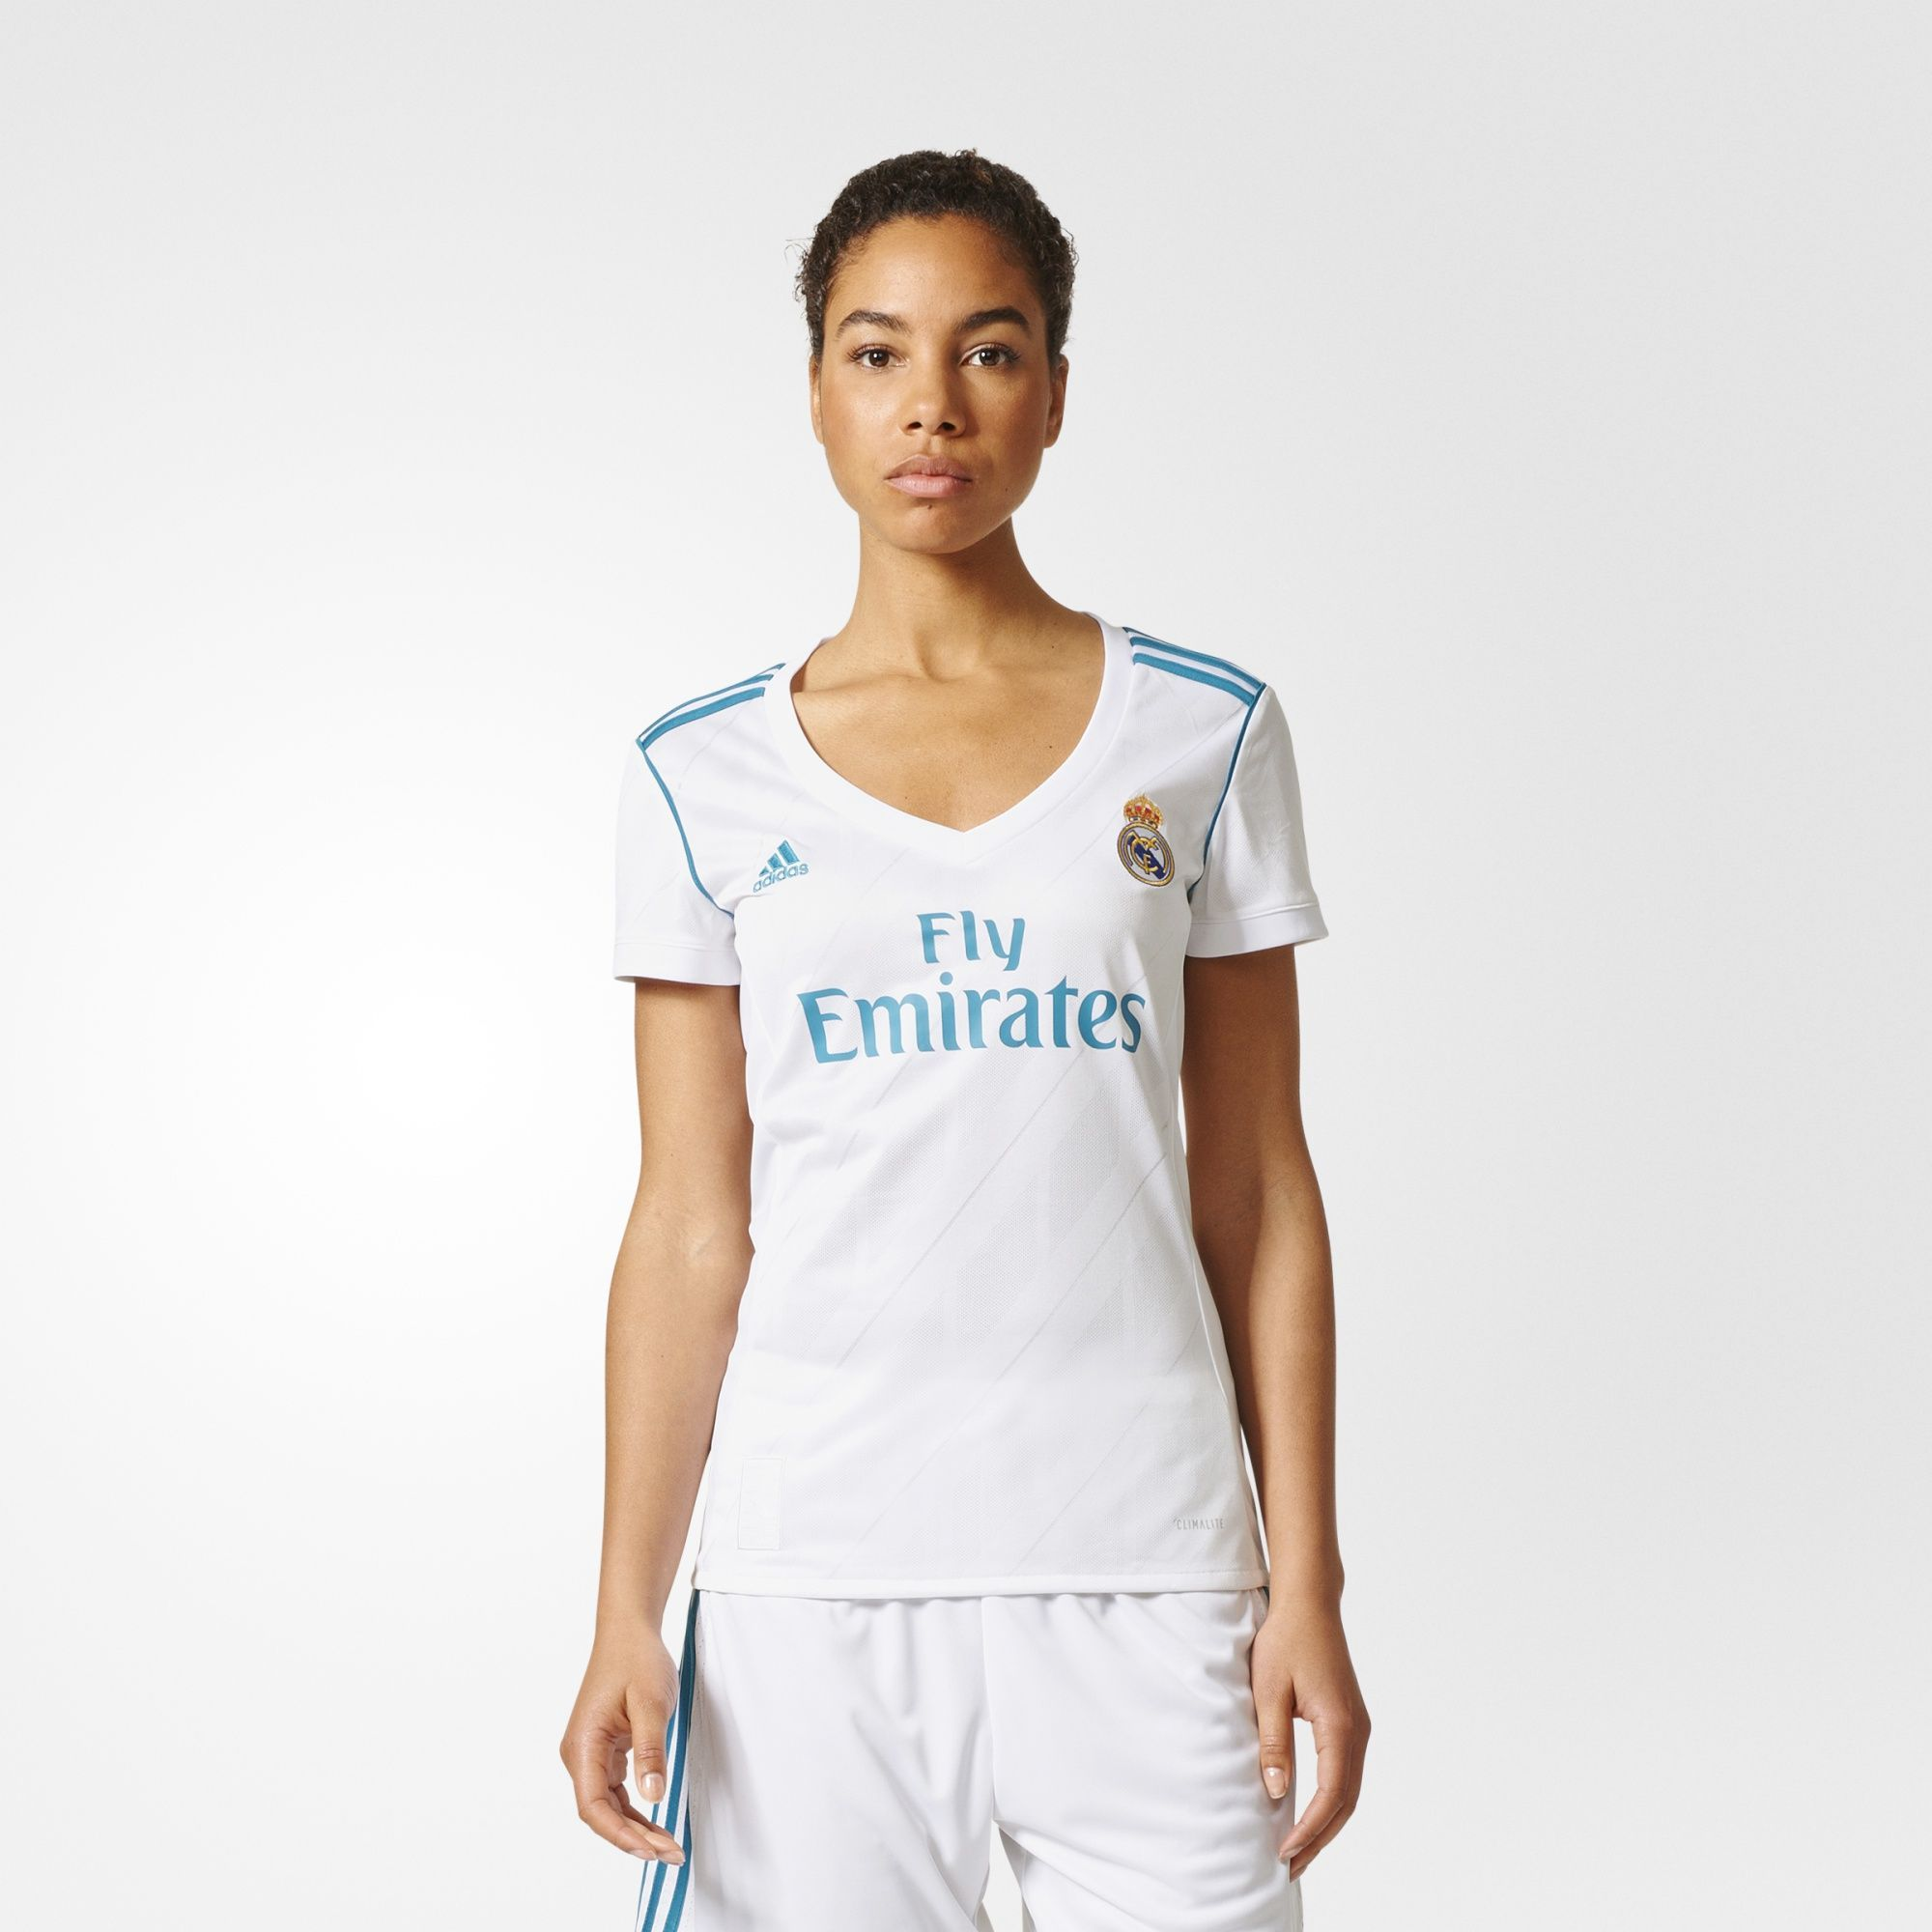 adidas - Jersey Real Madrid Local Mujer Réplica 2017 2018  d640a611bfcc1